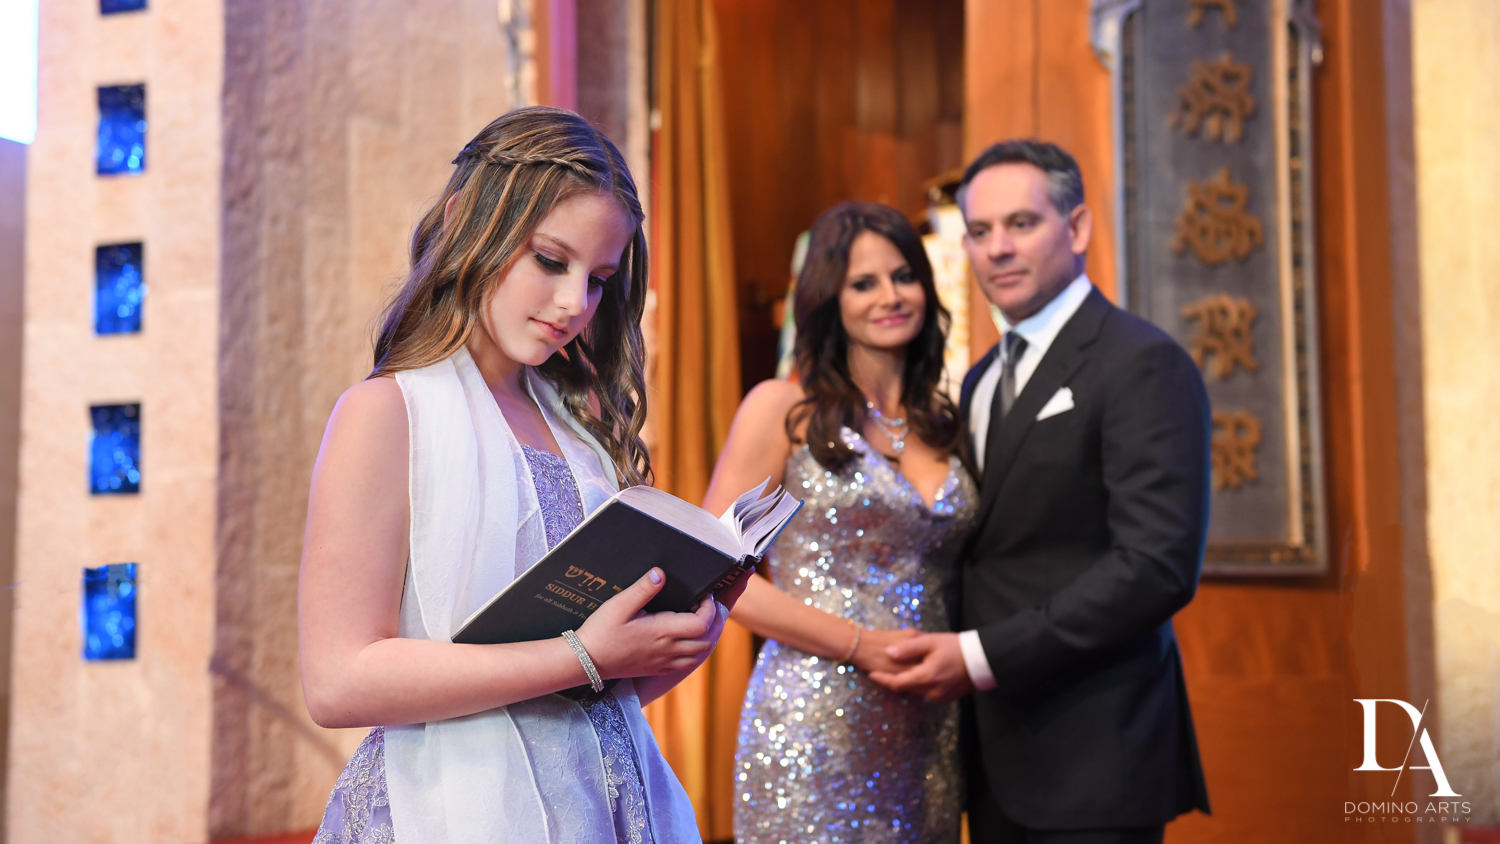 Reading Torah at Traditional Jewish Bat Mitzvah at Aventura Turnberry Jewish Center Miami by Domino Arts Photography